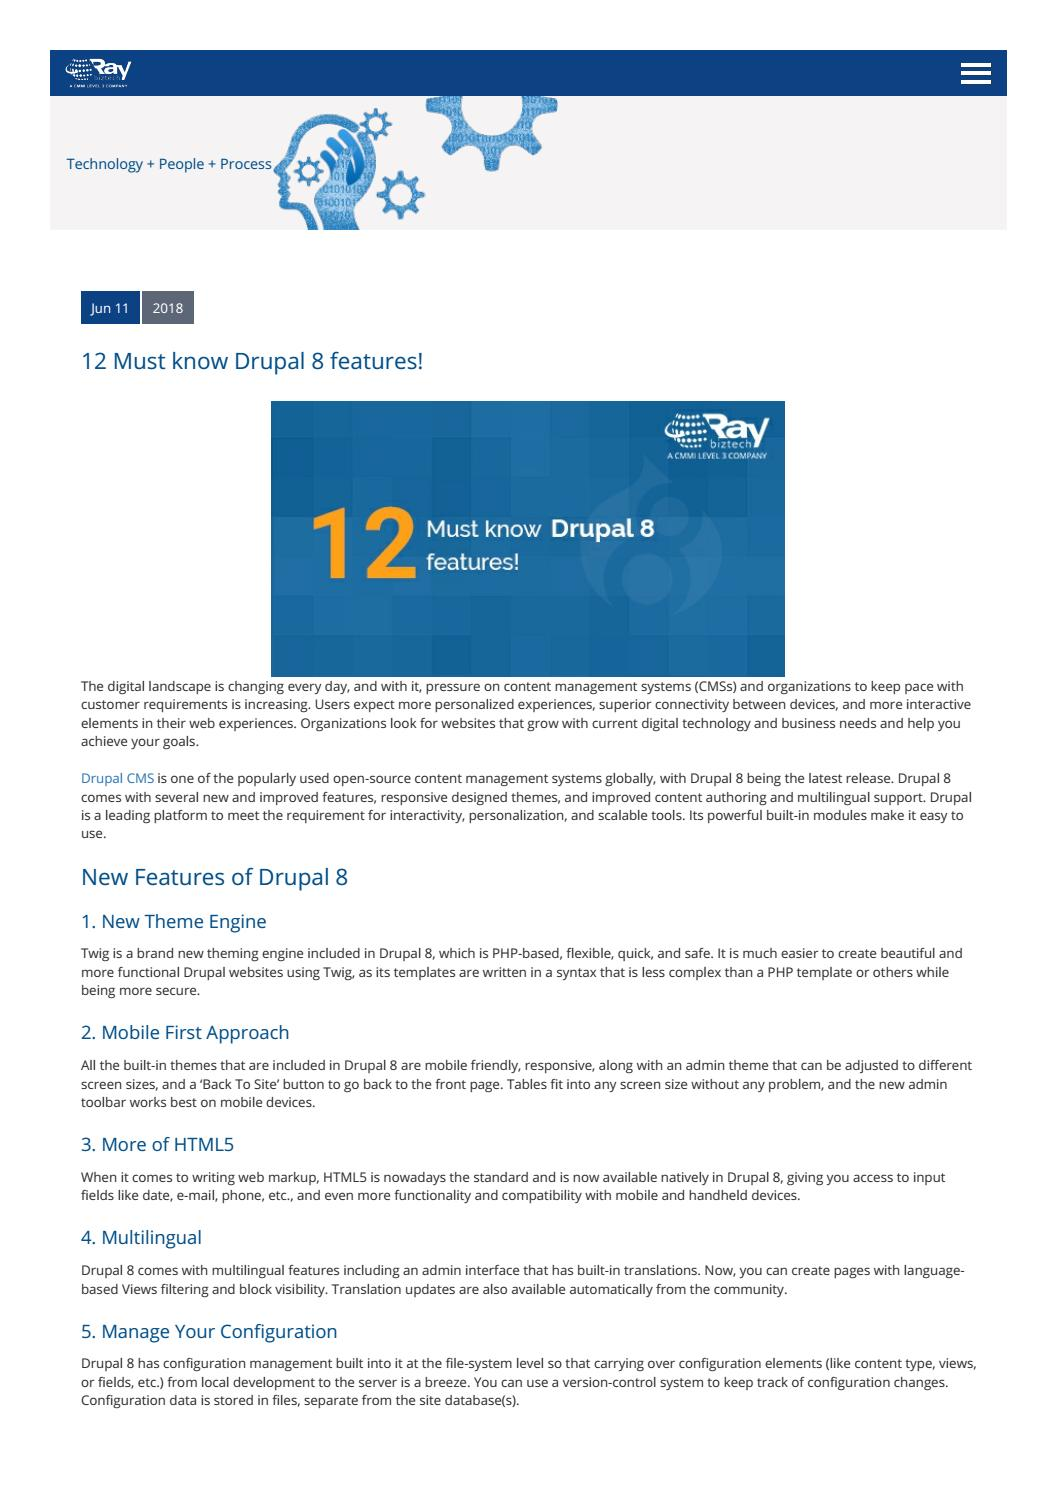 12 Must Know Drupal 8 Features by Raybiztech - issuu